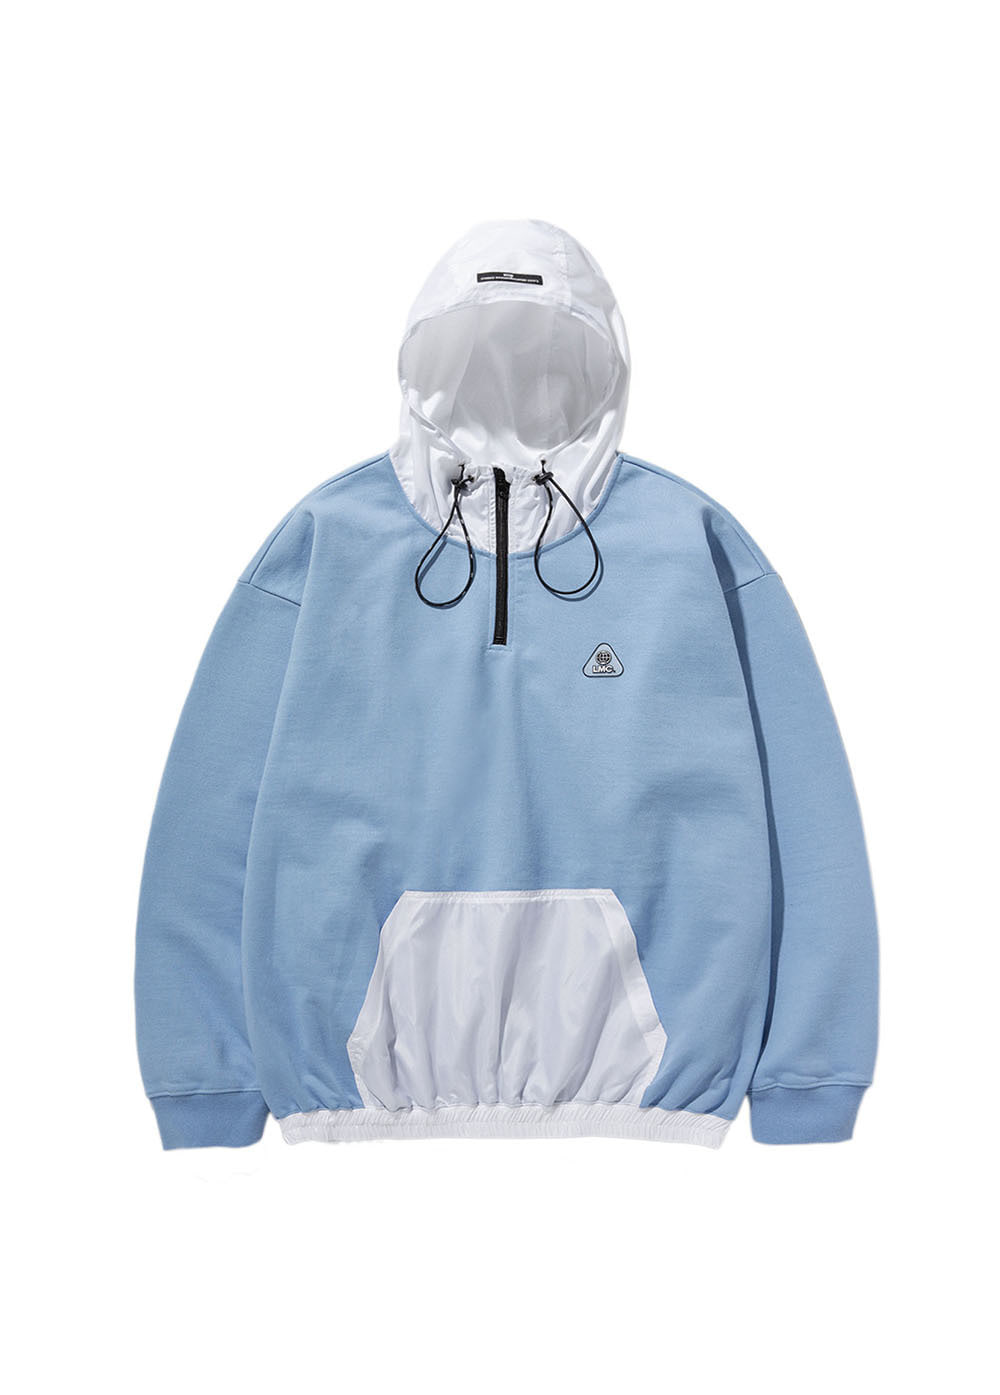 LMC MIX QUARTER ZIP-UP OVERSIZED HOODIE blue